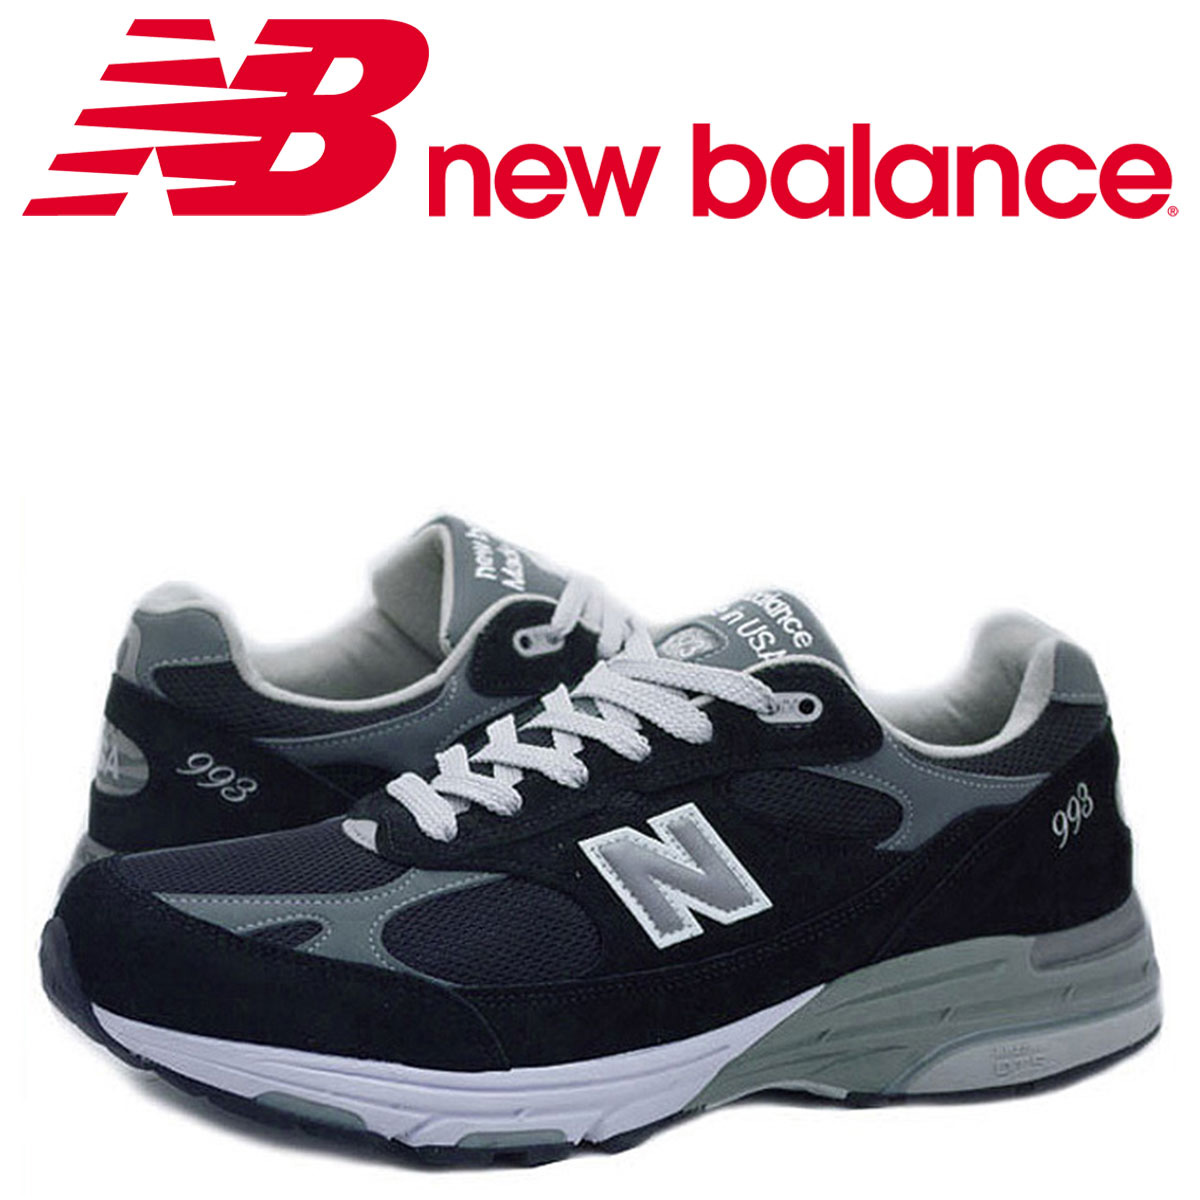 new york d9634 83313 New Balance new balance 993 men's sneakers MR993BK D Wise MADE IN USA black